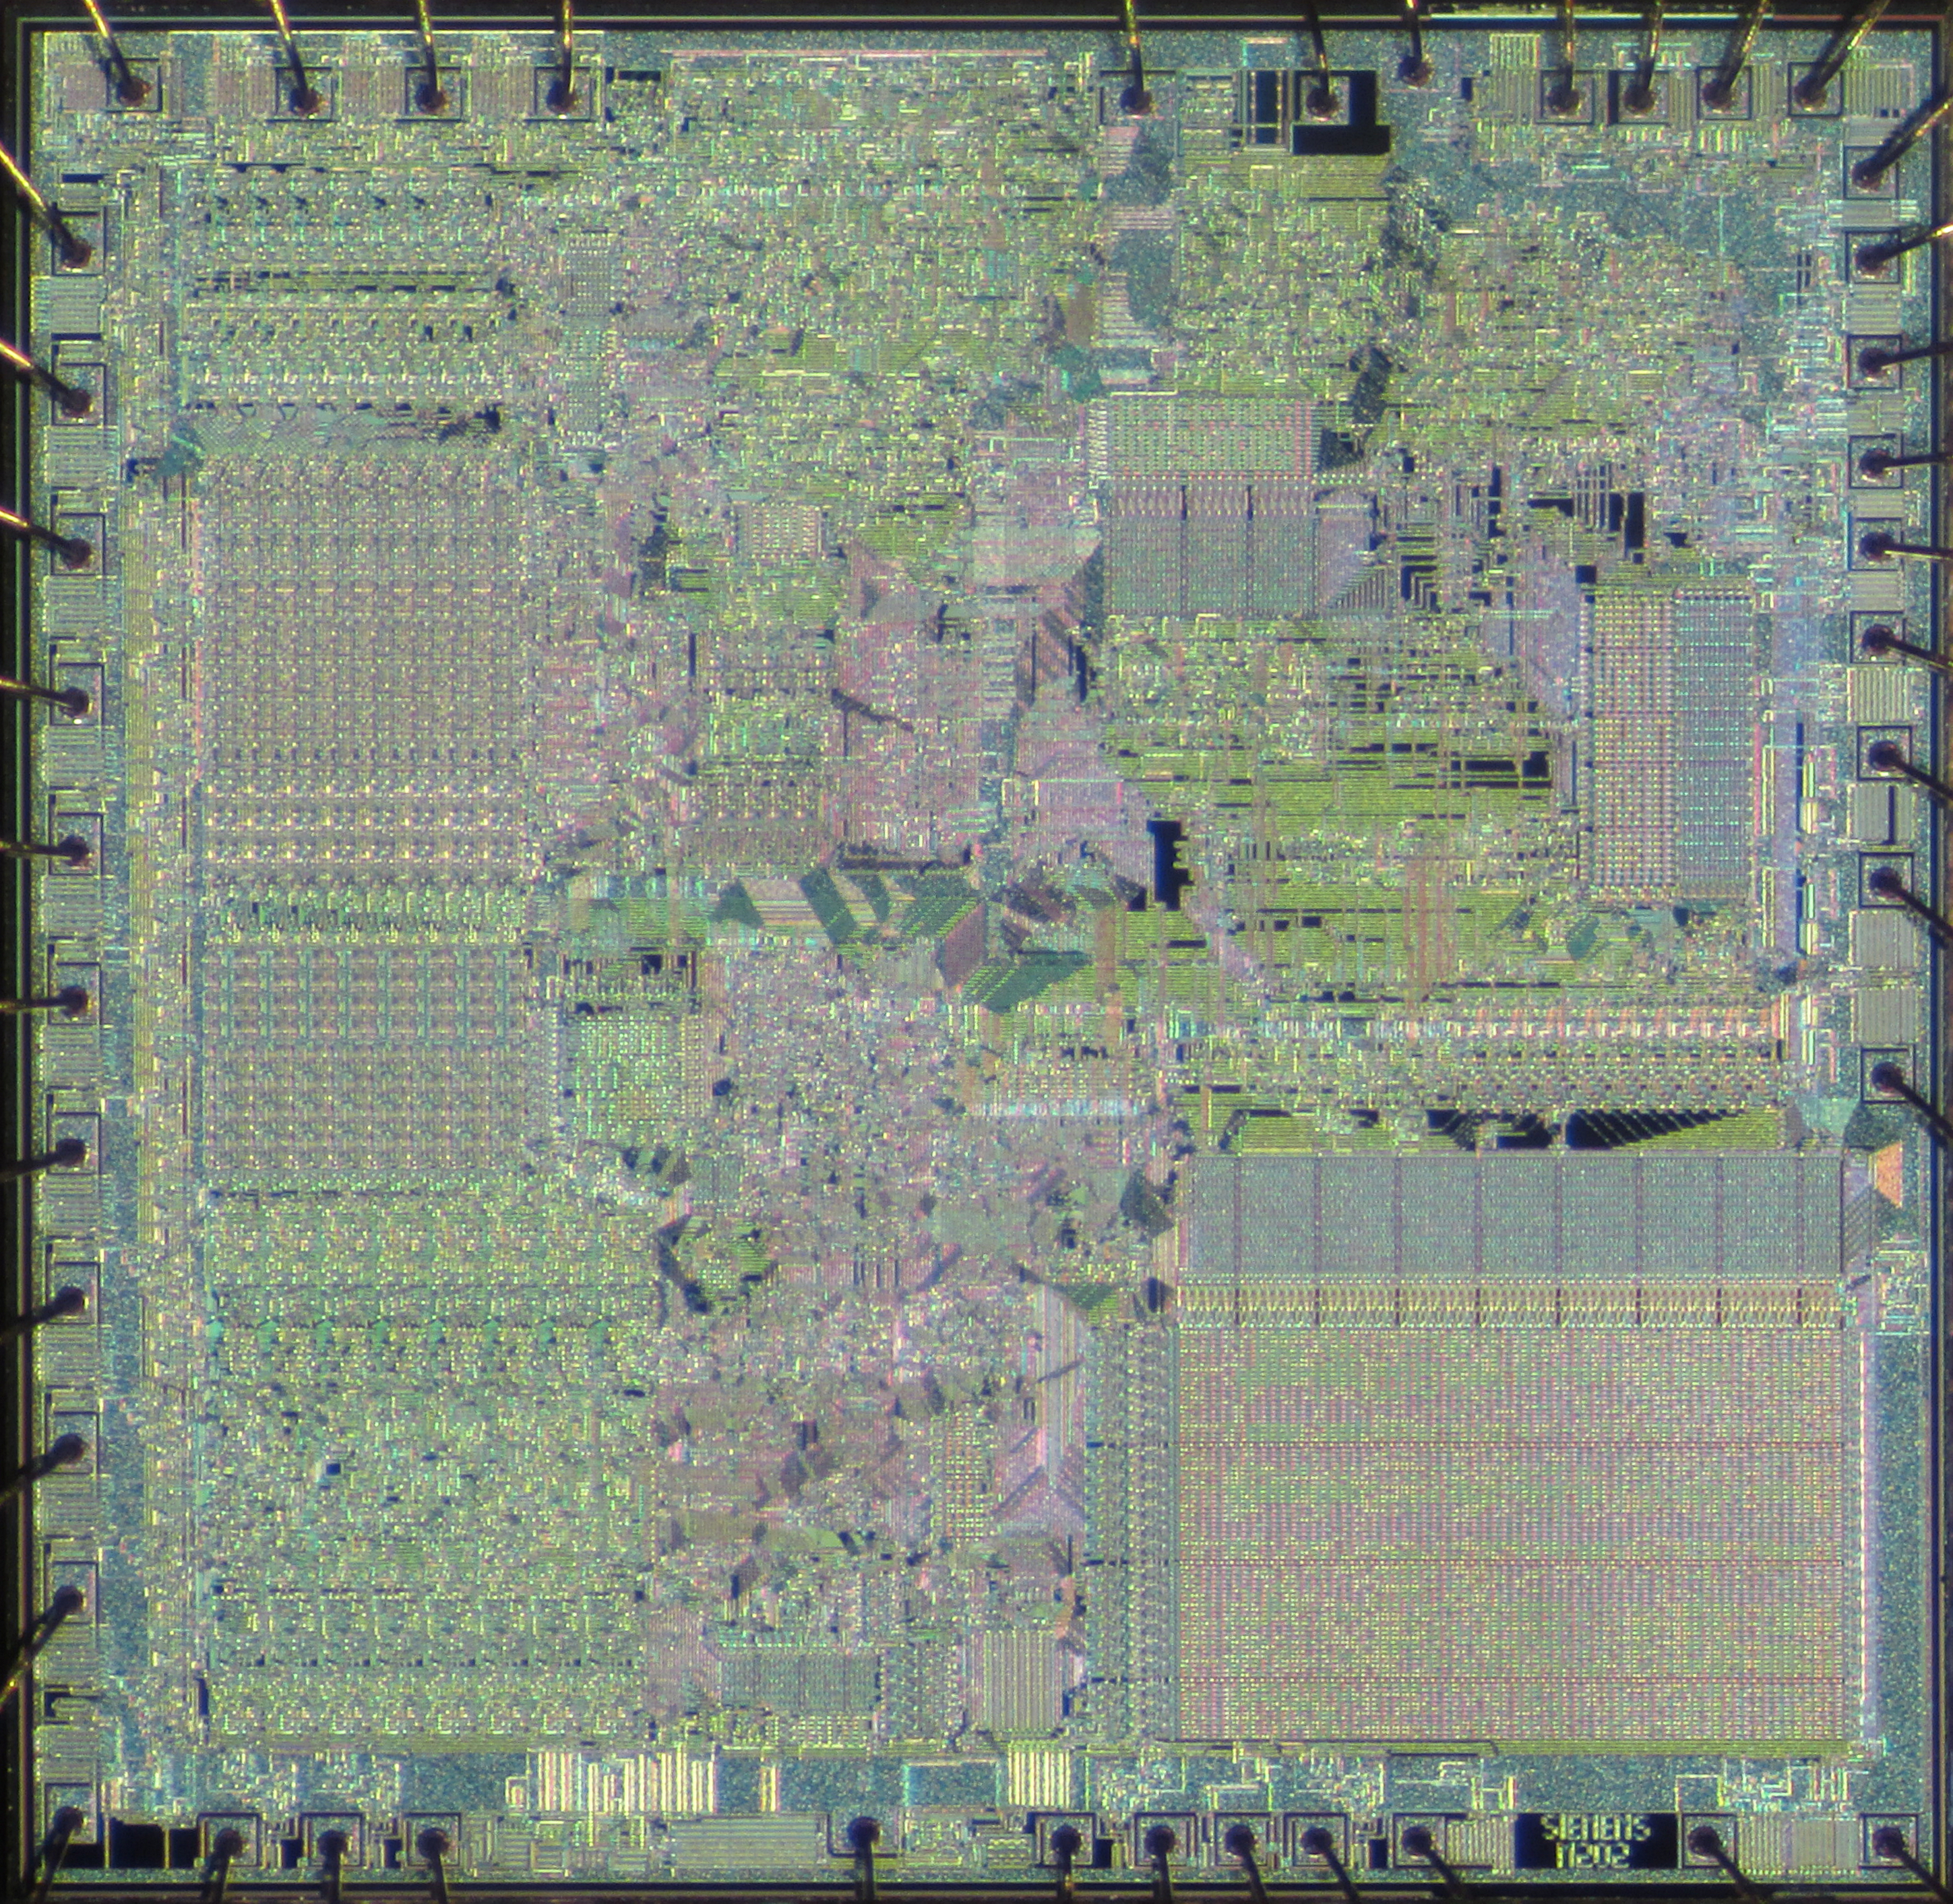 8086-80286 - CPU MUSEUM - MUSEUM OF MICROPROCESSORS & DIE PHOTOGRAPHY